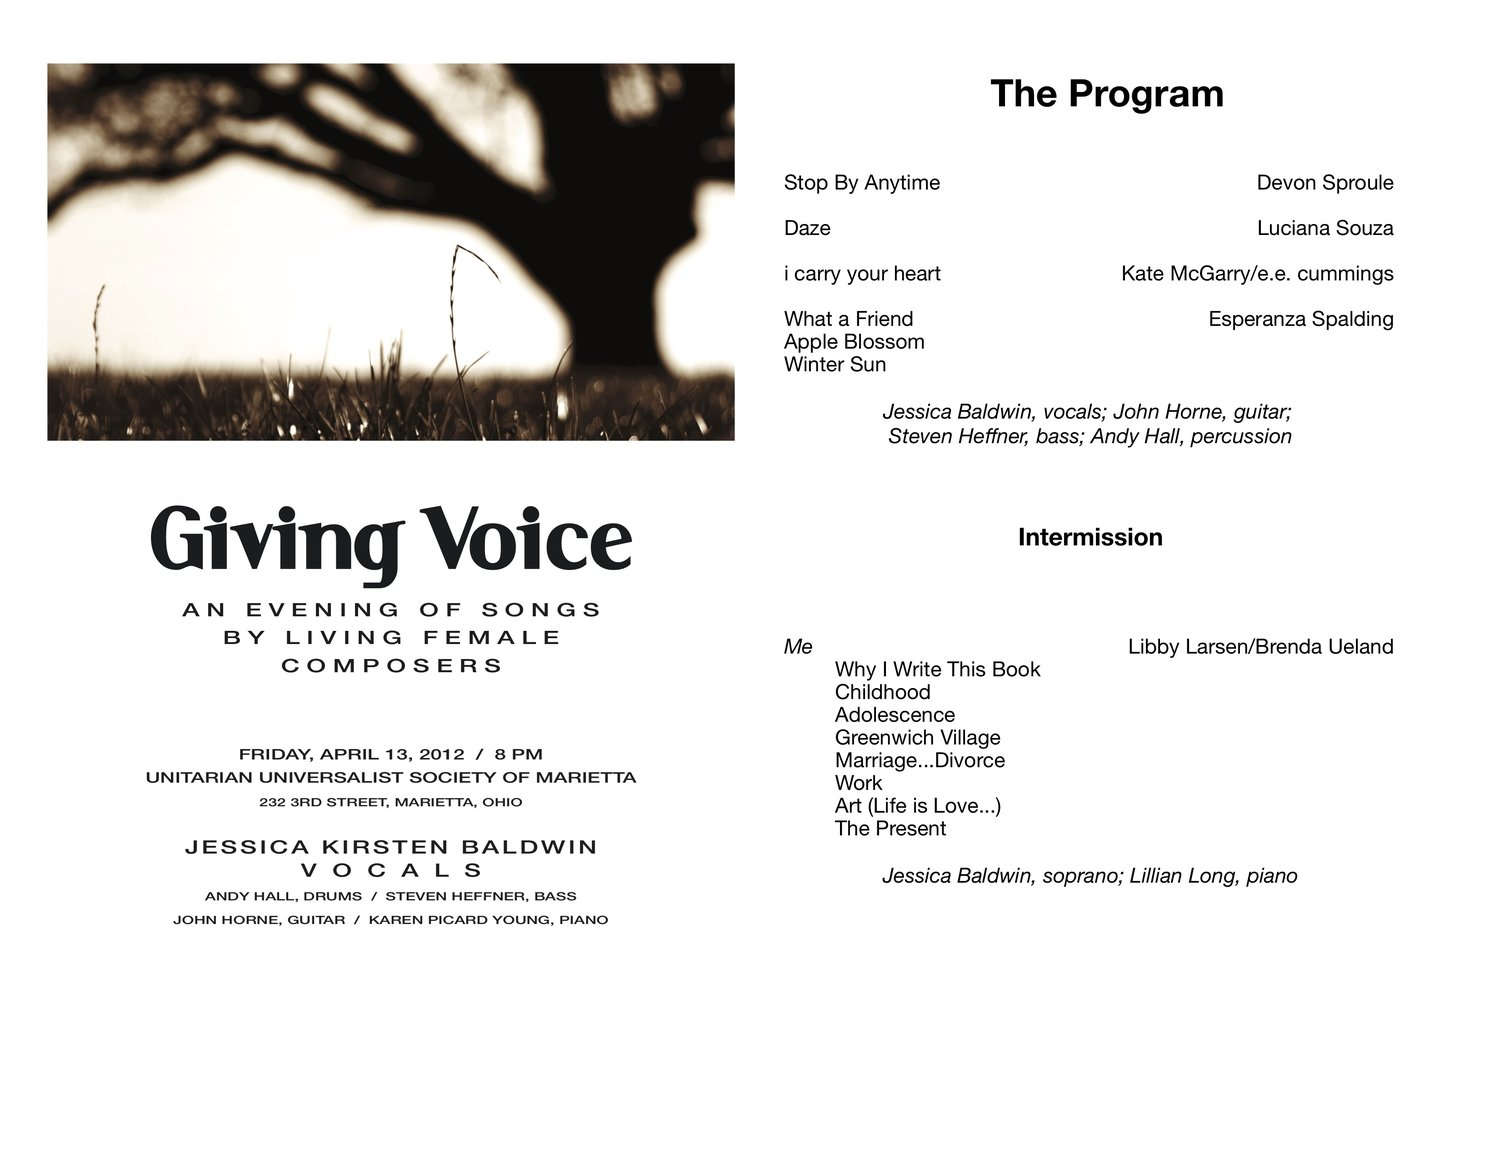 Giving Voice: An Evening of Song by Living Female Composers